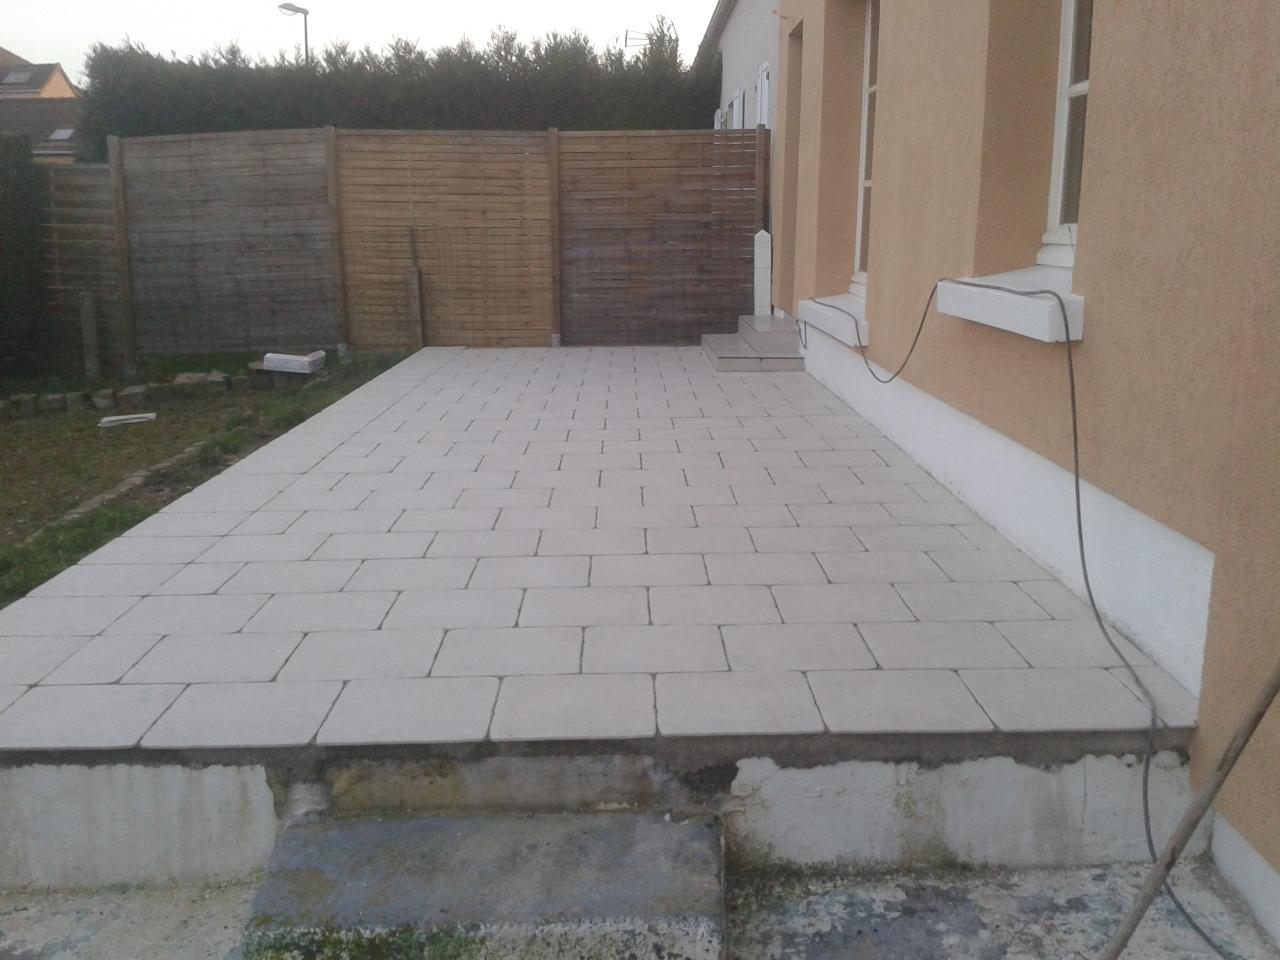 Pose carrelage pose carrelage ext rieur sur dalle b ton for Carrelage sur fermacell sol